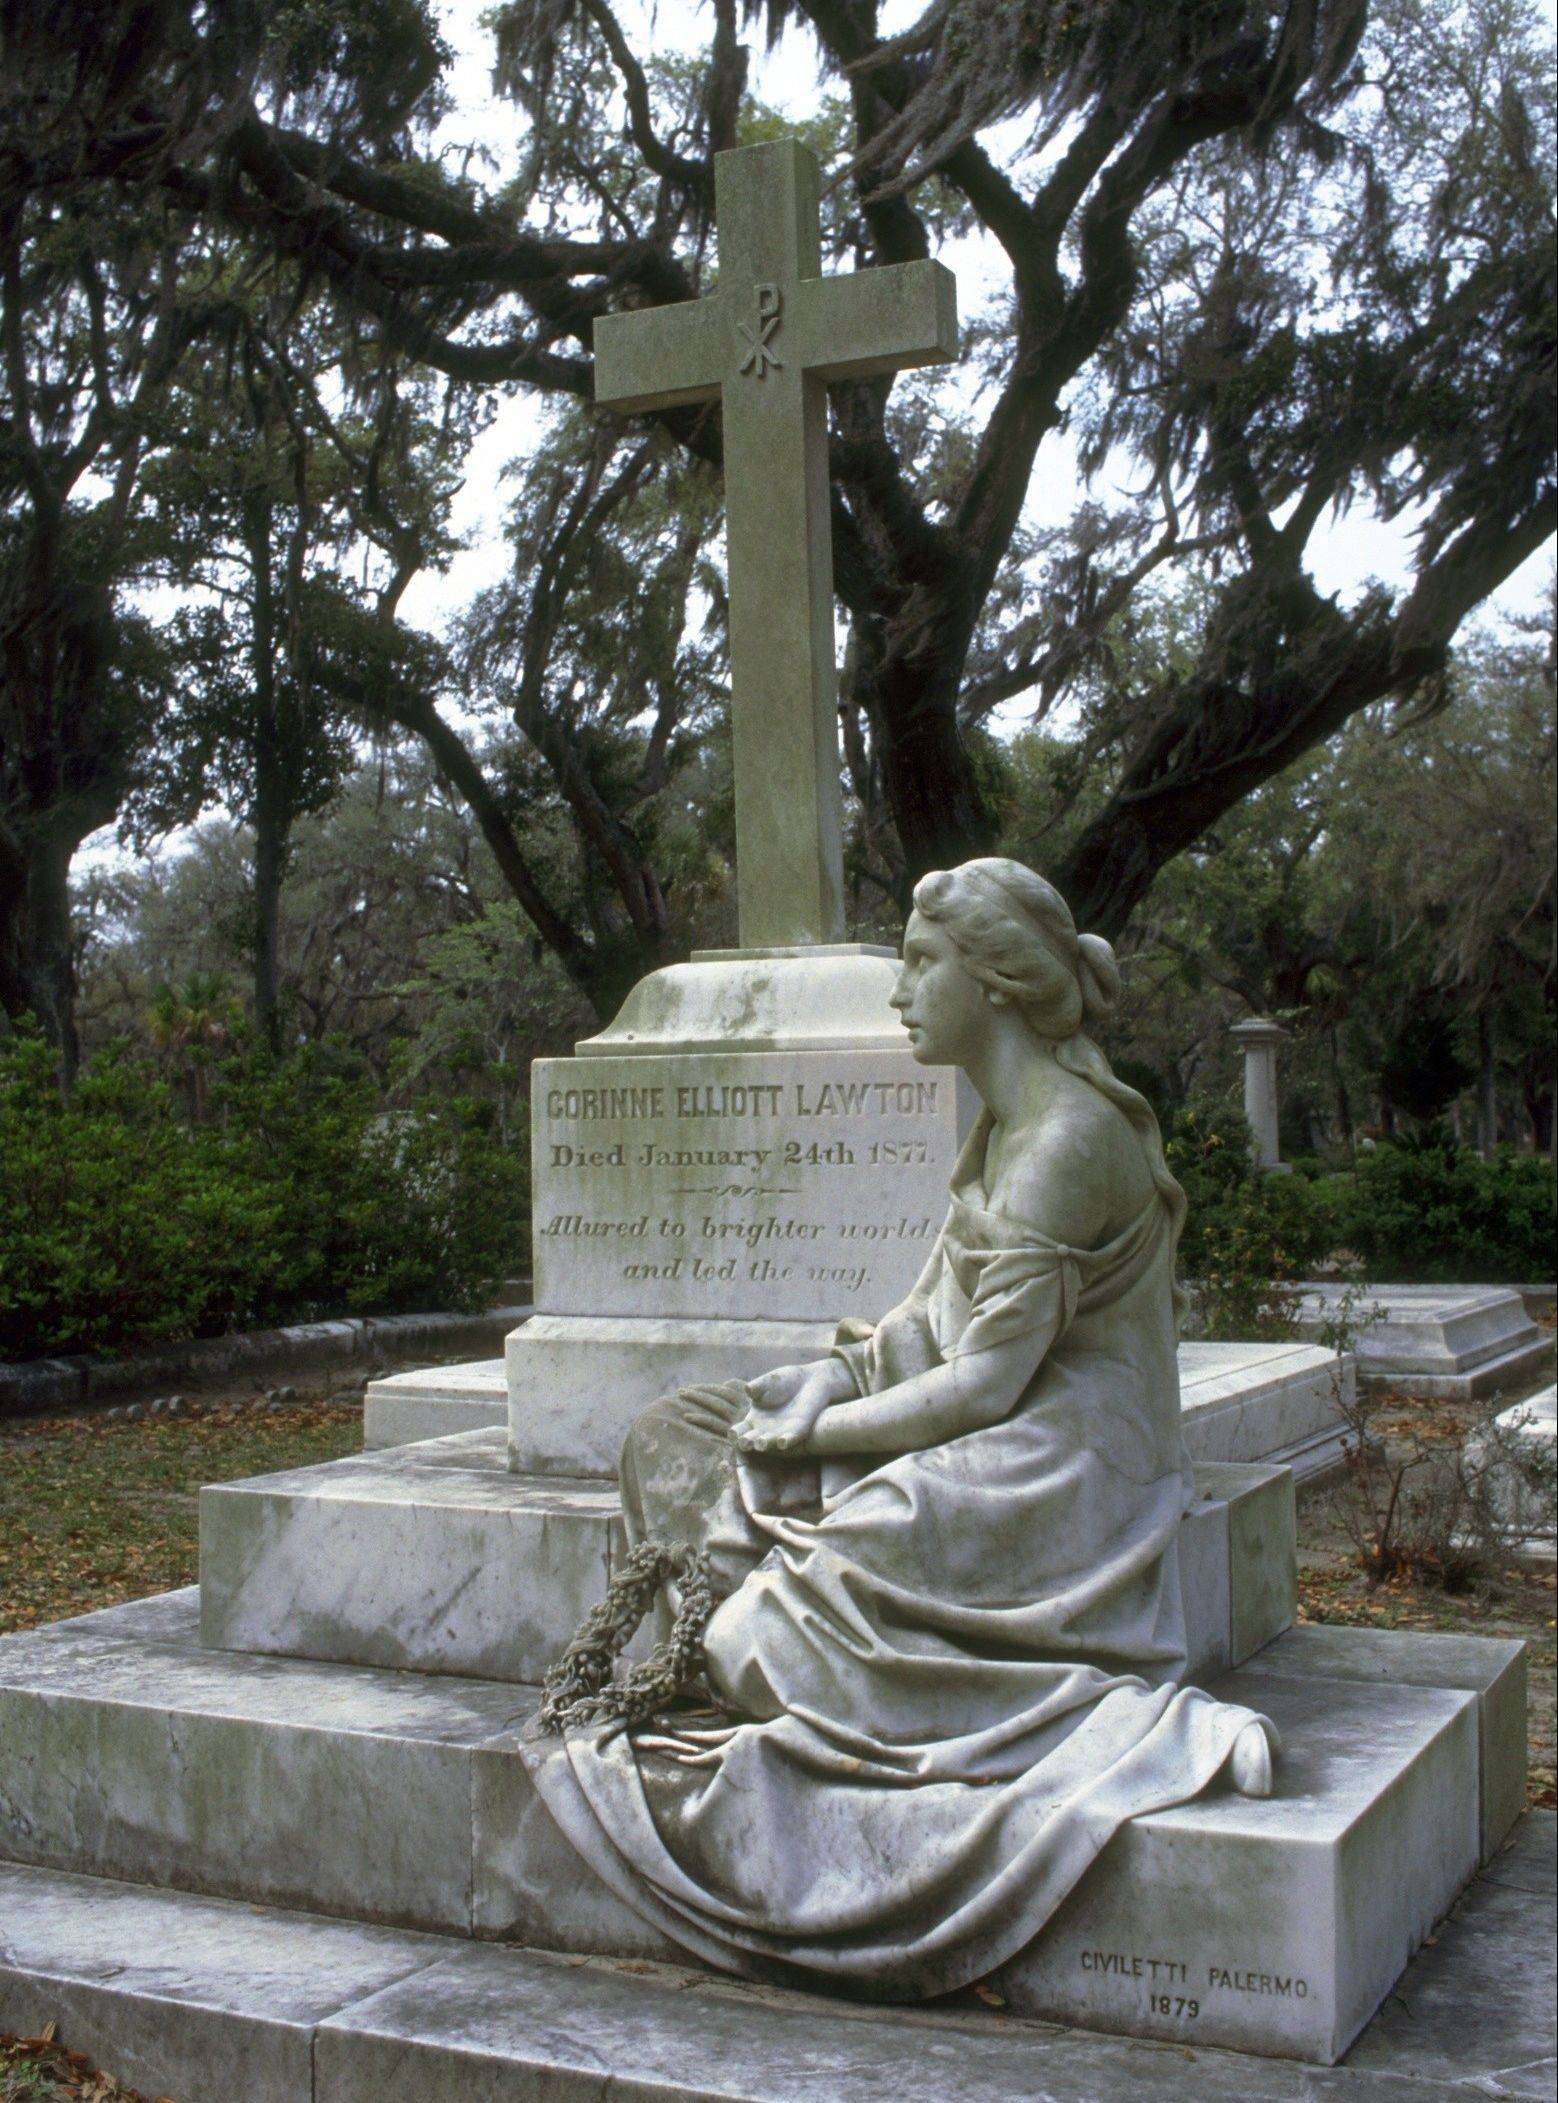 "The Bonaventure Cemetery in Savannah, Ga., is known for its spooky but romantic statues, memorials and more of those live oaks draping grave sites with Spanish moss, was also featured in ""Midnight in the Garden of Good and Evil."""